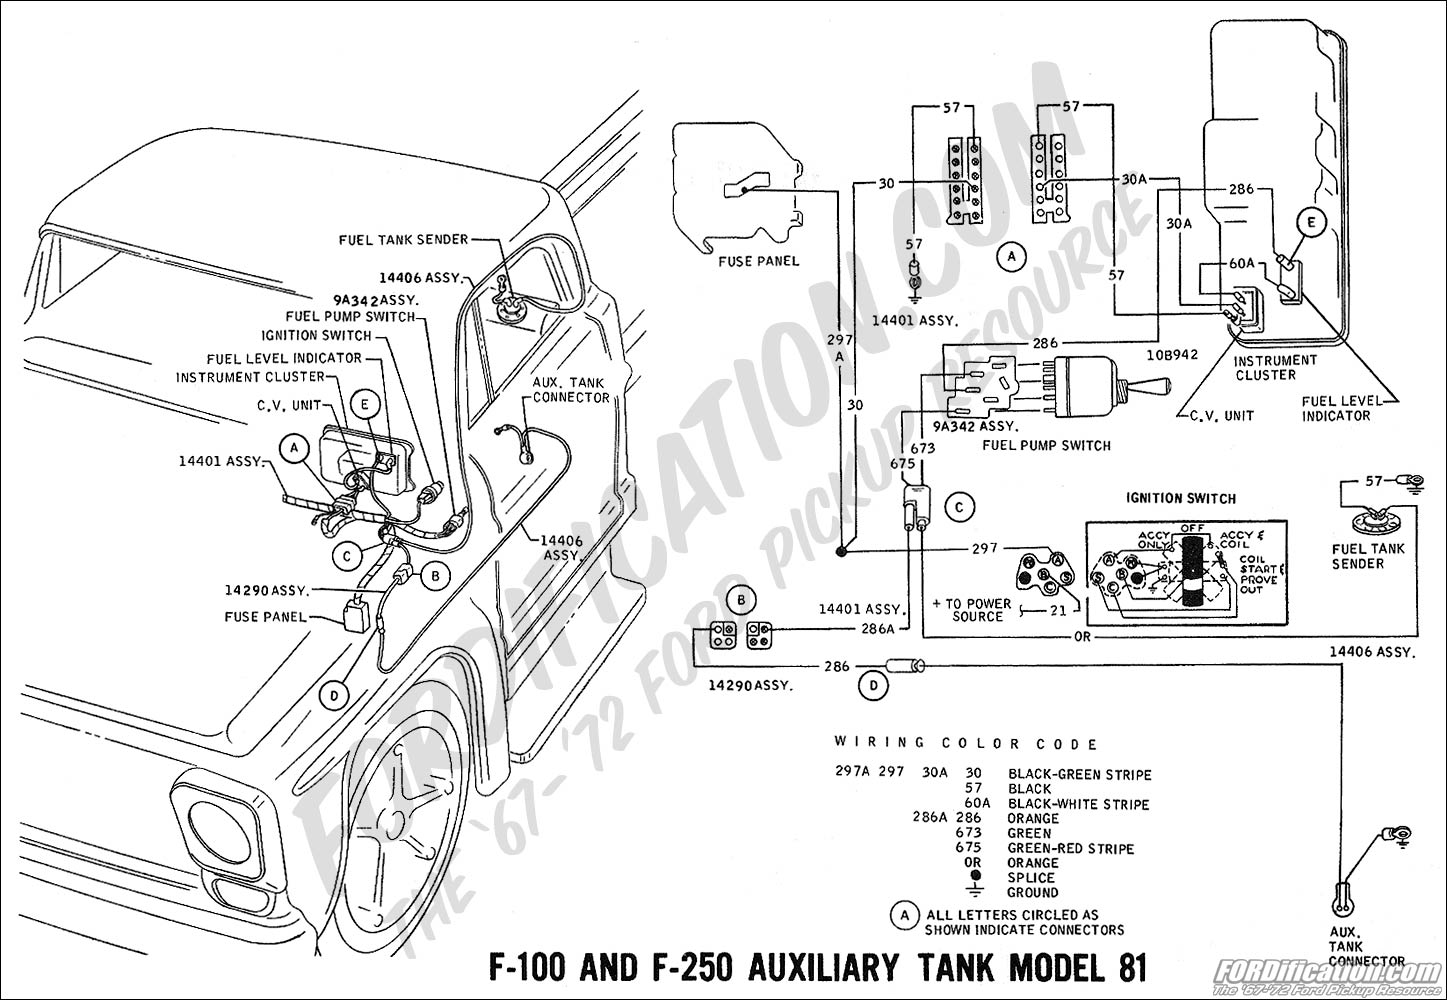 1977 Ford F 250 Dash Schematic Wiring Diagram Data For 1974 F250 Fuse Box F100